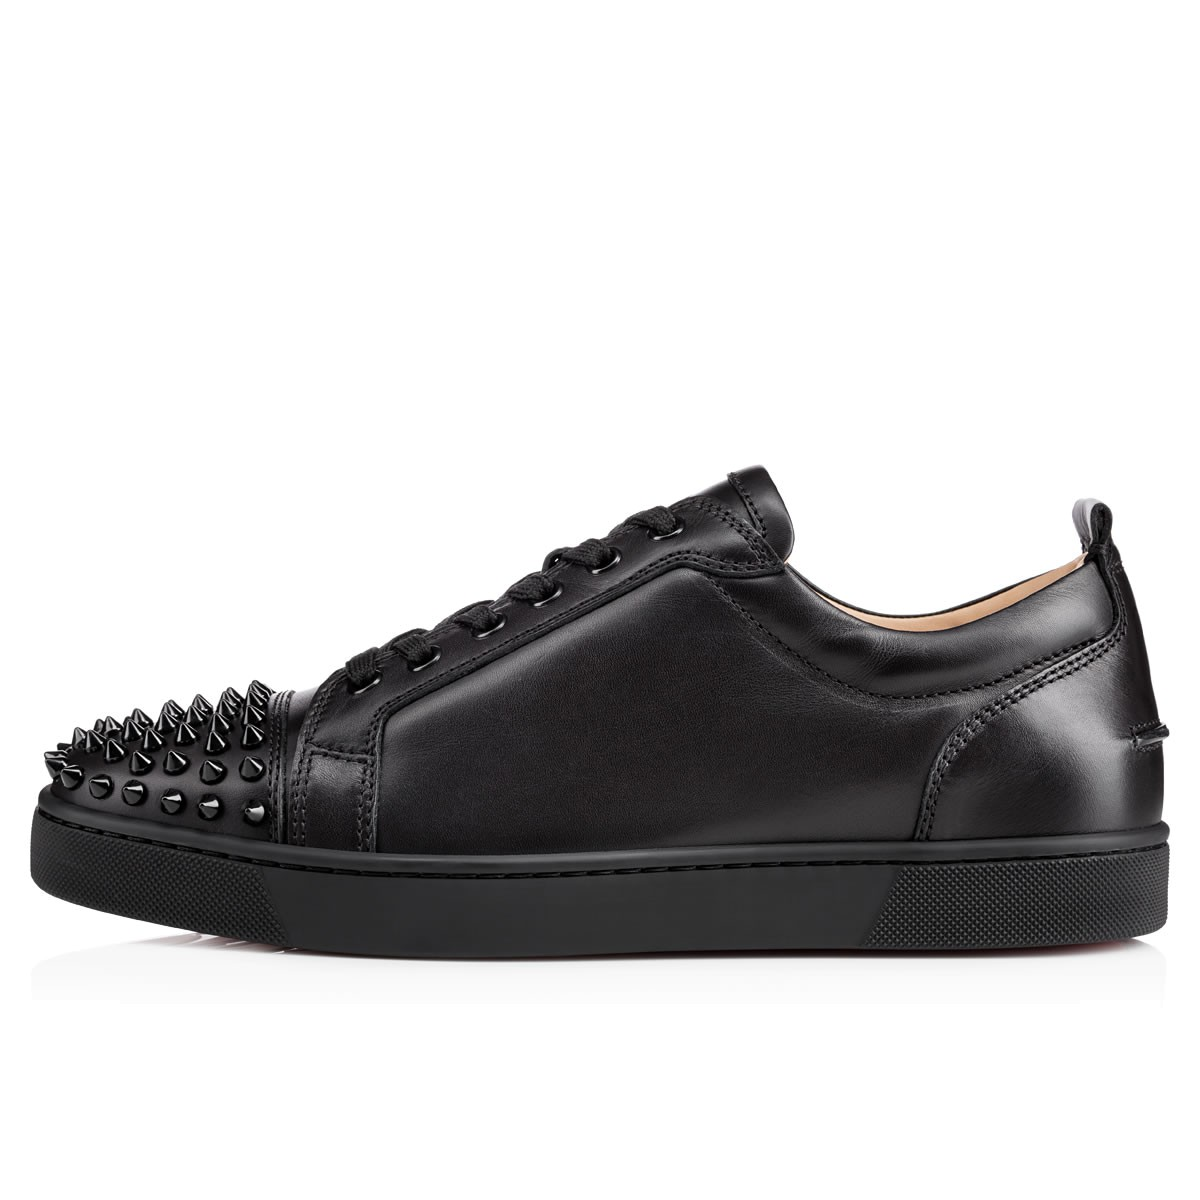 premium selection ade8d b2a84 Louis Junior Spikes Black/Black Leather - Men Shoes - Christian Louboutin